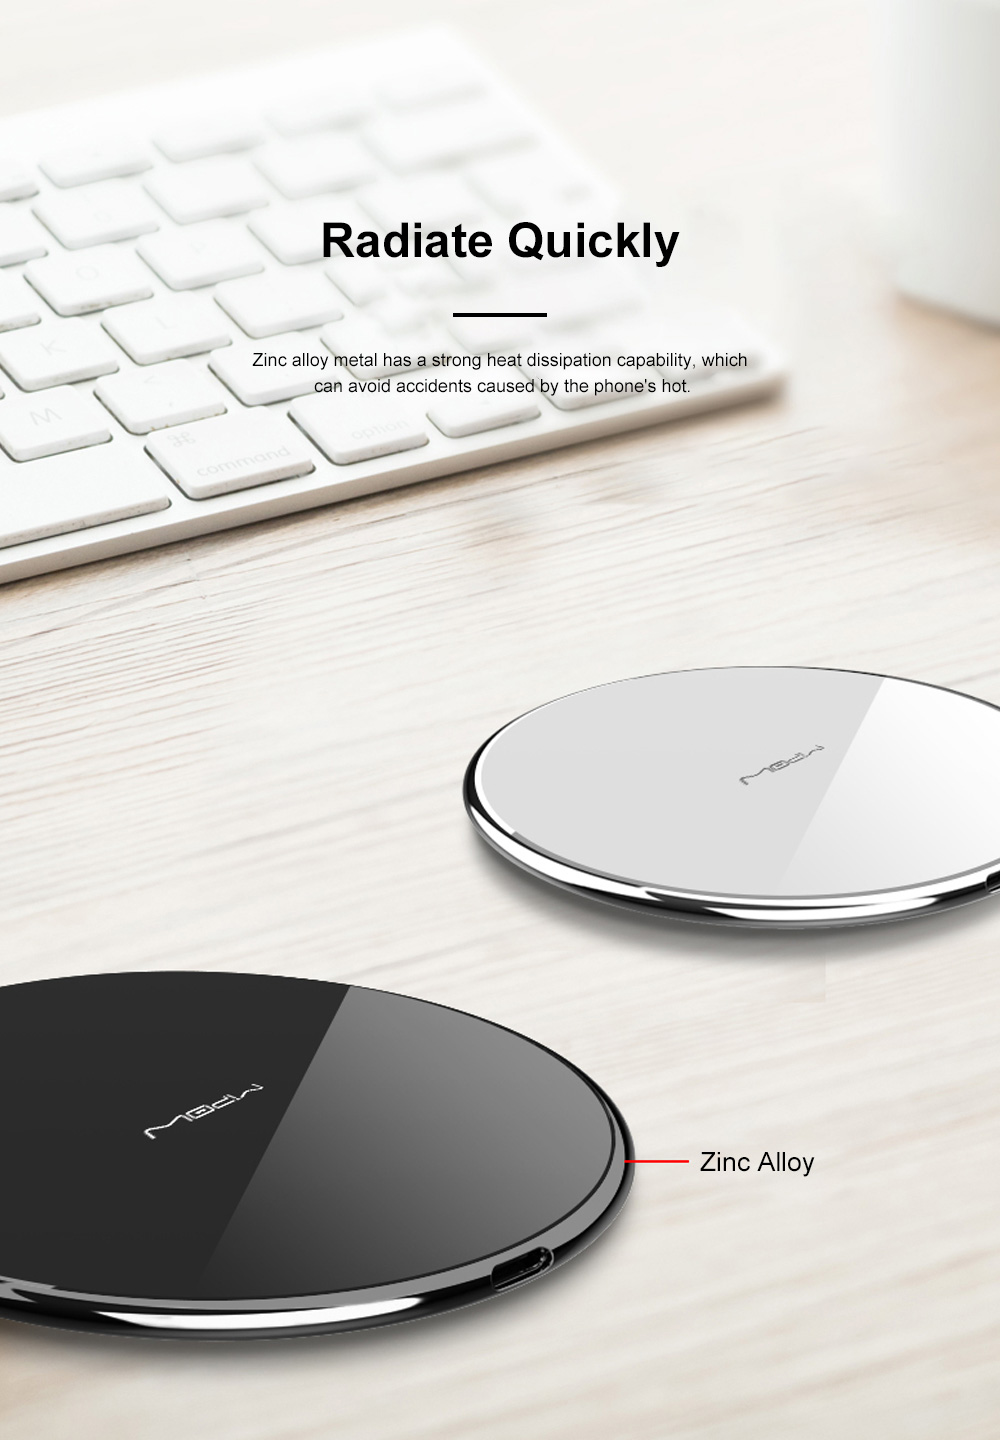 MIPOW Thin Portable Zinc Alloy Tempered Glass Quick Charging Wireless Charger for iPhone Xiaomi Samsung Huawei Nokia 6